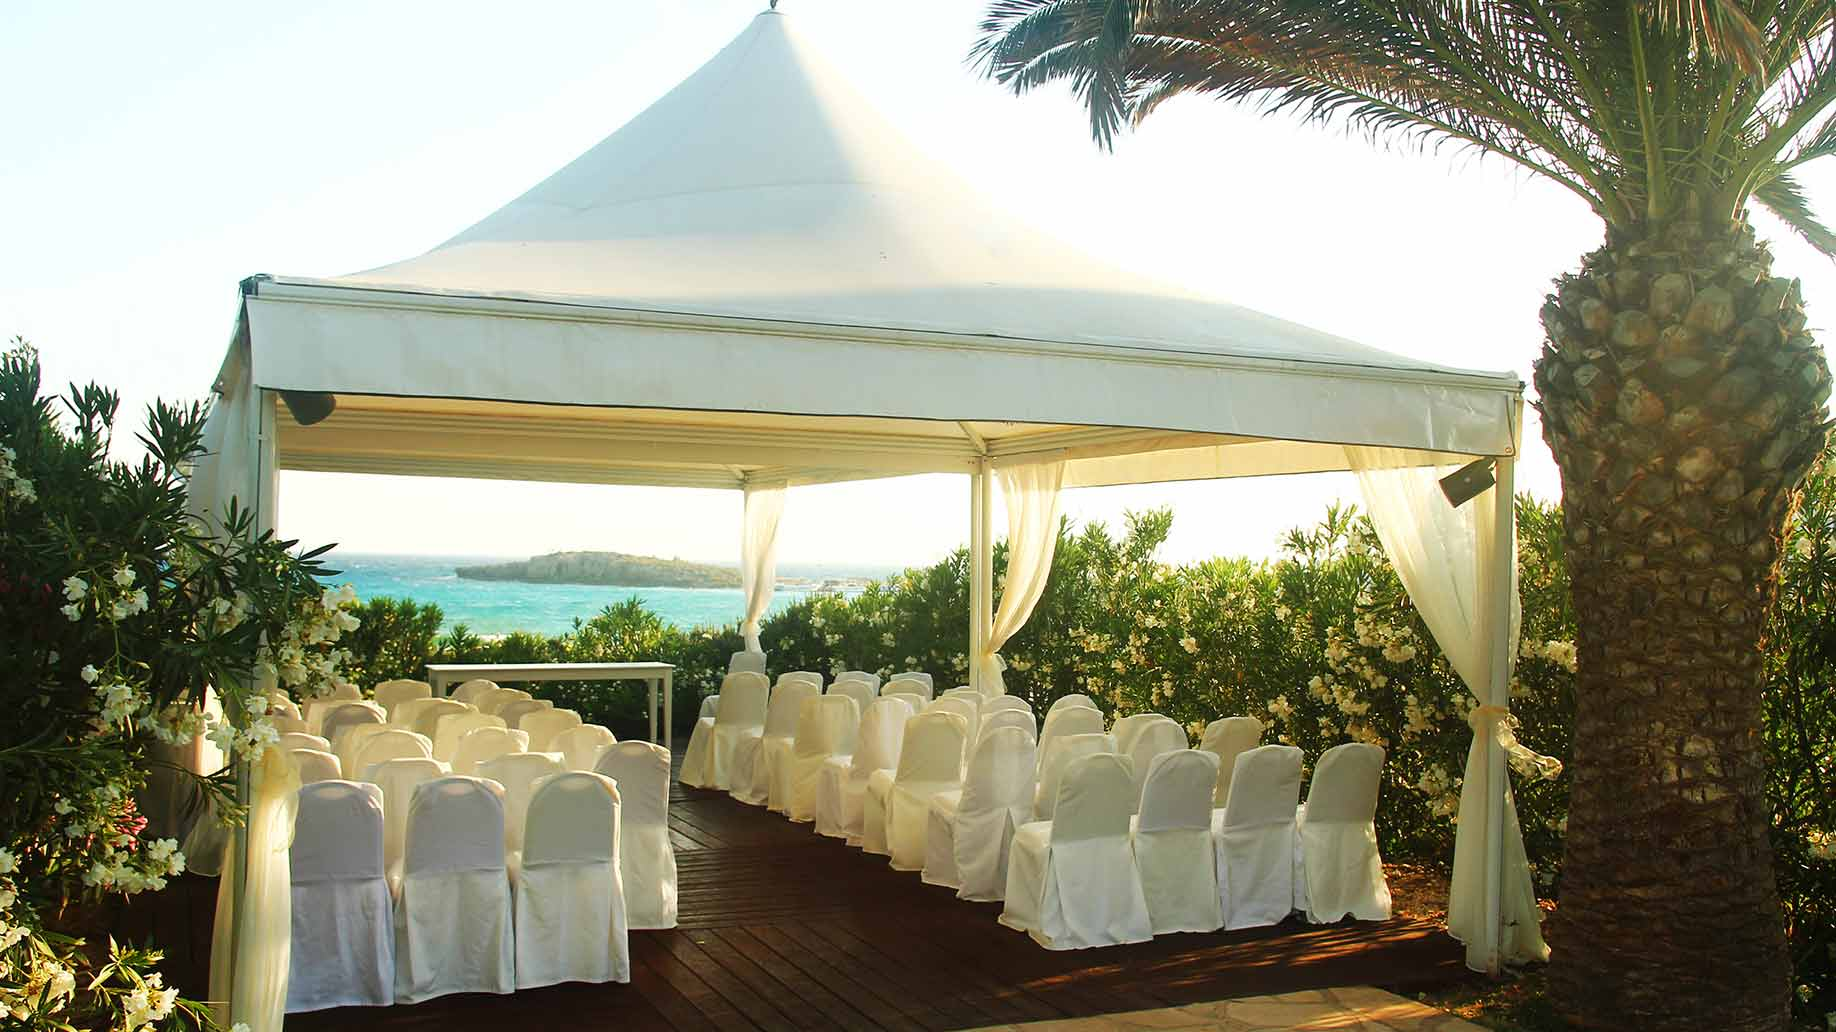 How Much Does a Wedding Tent Rental Cost